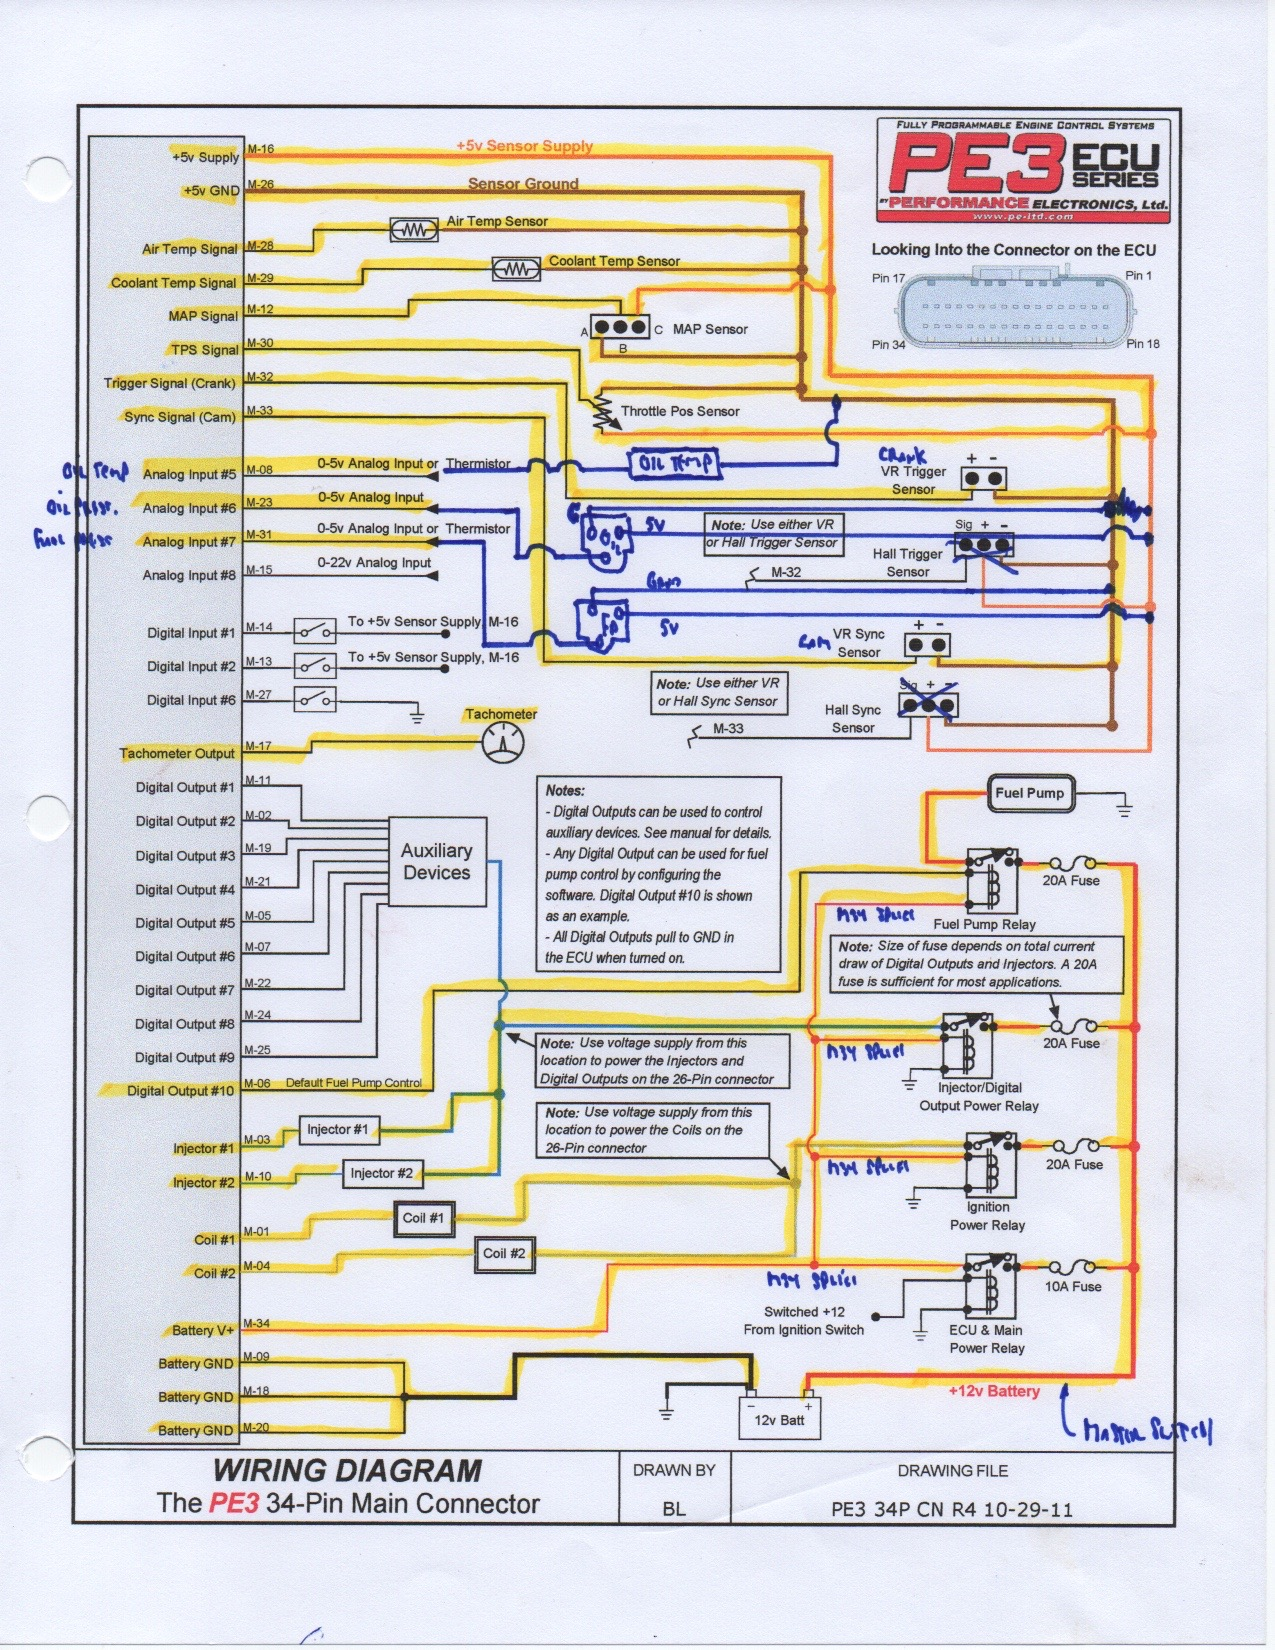 Factory Wiring Diagrams Schematic Diagram Electronic Aprilia Sxv Performance Electronics Junk Yard Zetecrhjunkyardzetec At